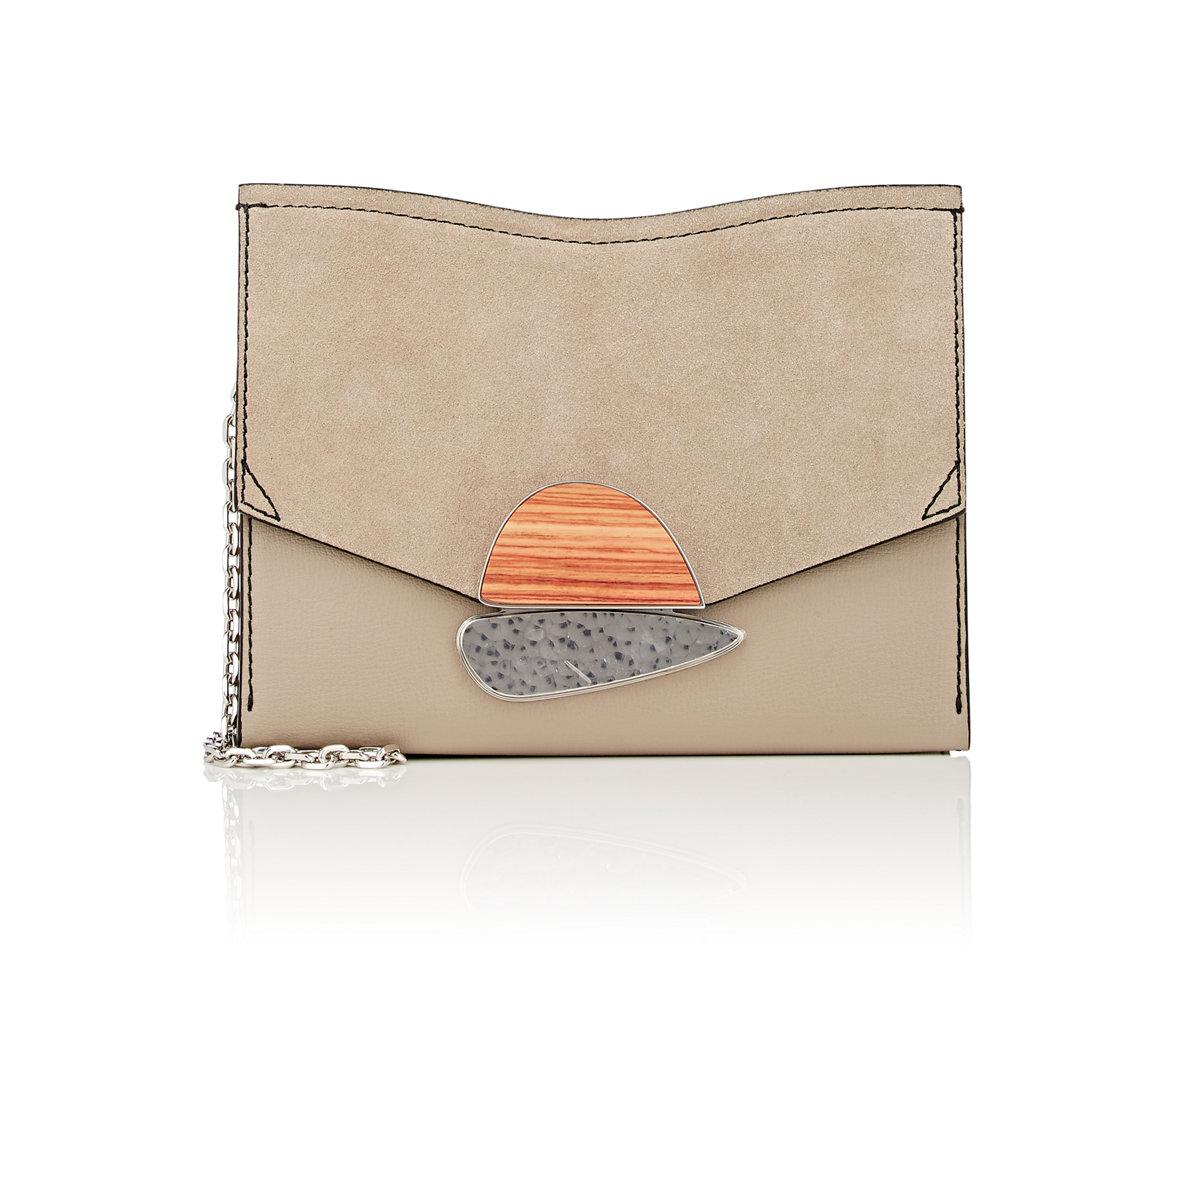 Curl small suede and leather clutch Proenza Schouler eiz30SVC7